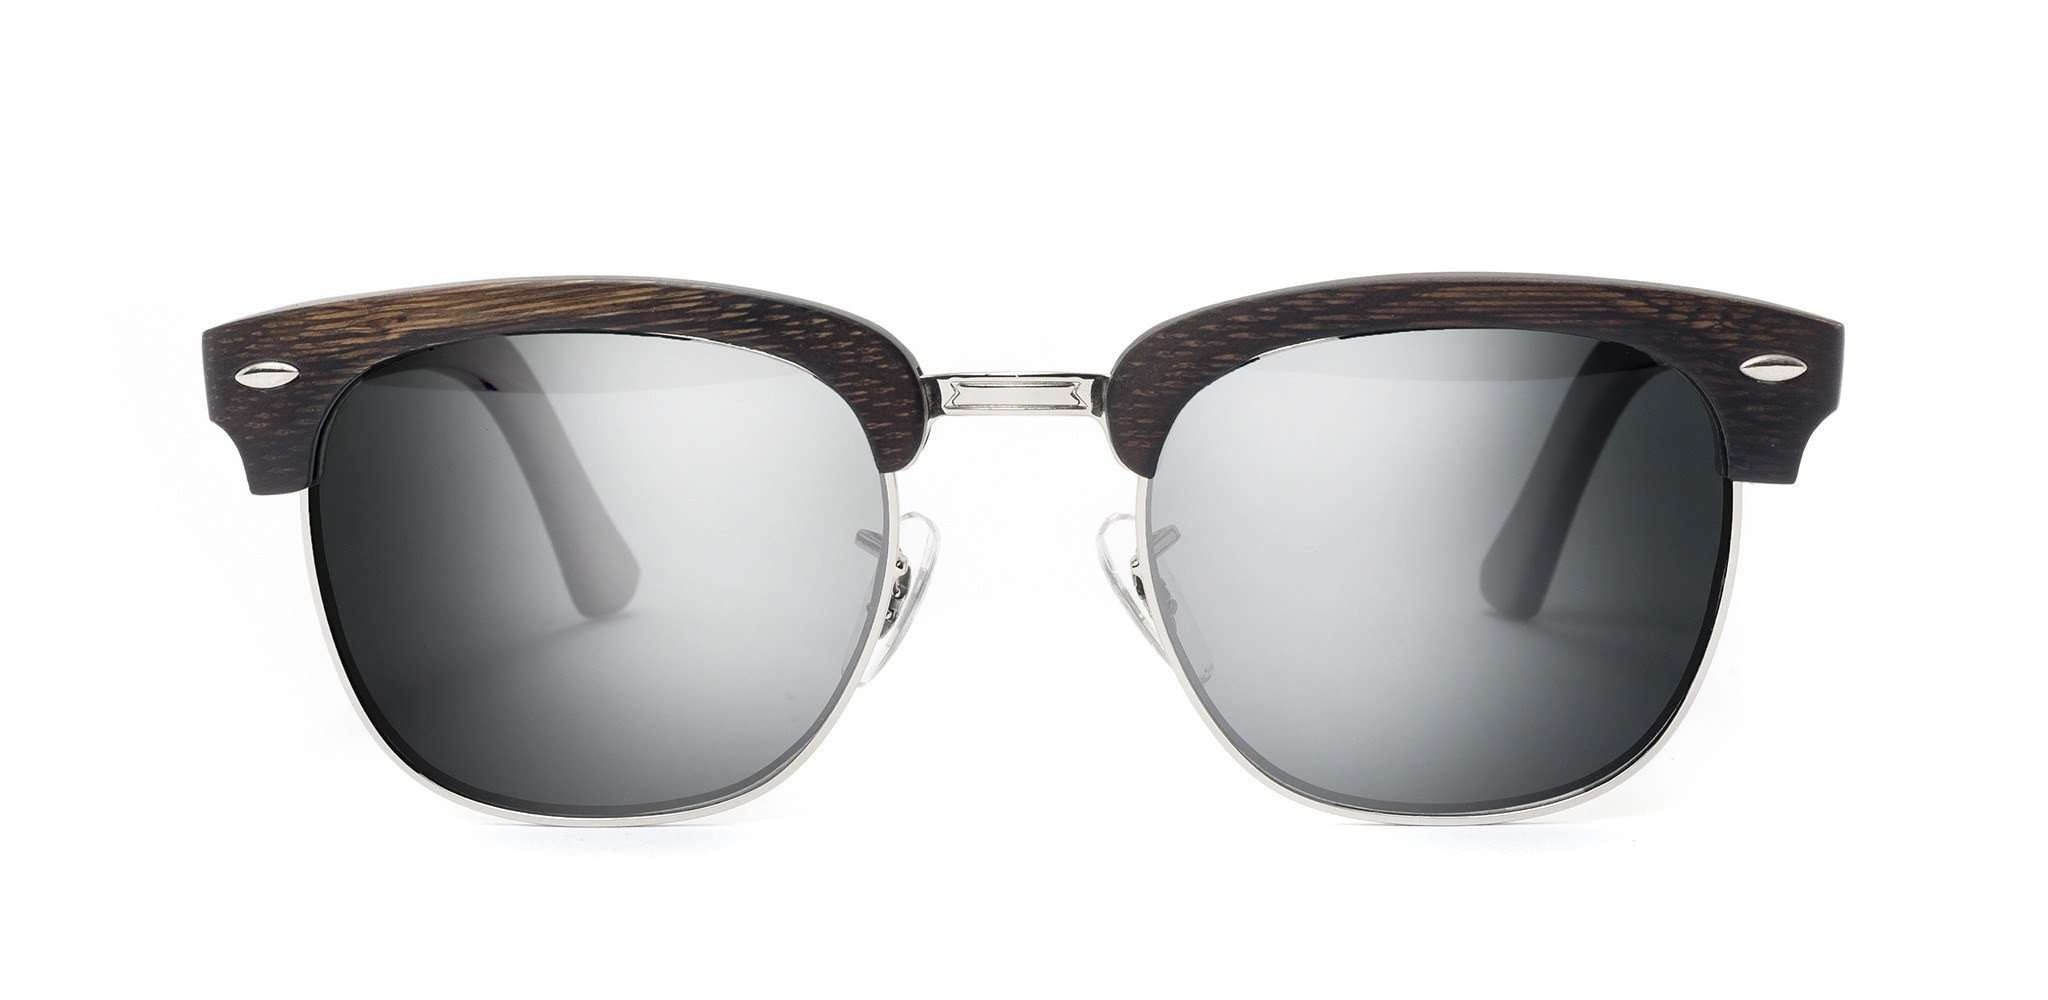 Atticus CR39 Polarized Bamboo Sunglasses - SwellVision